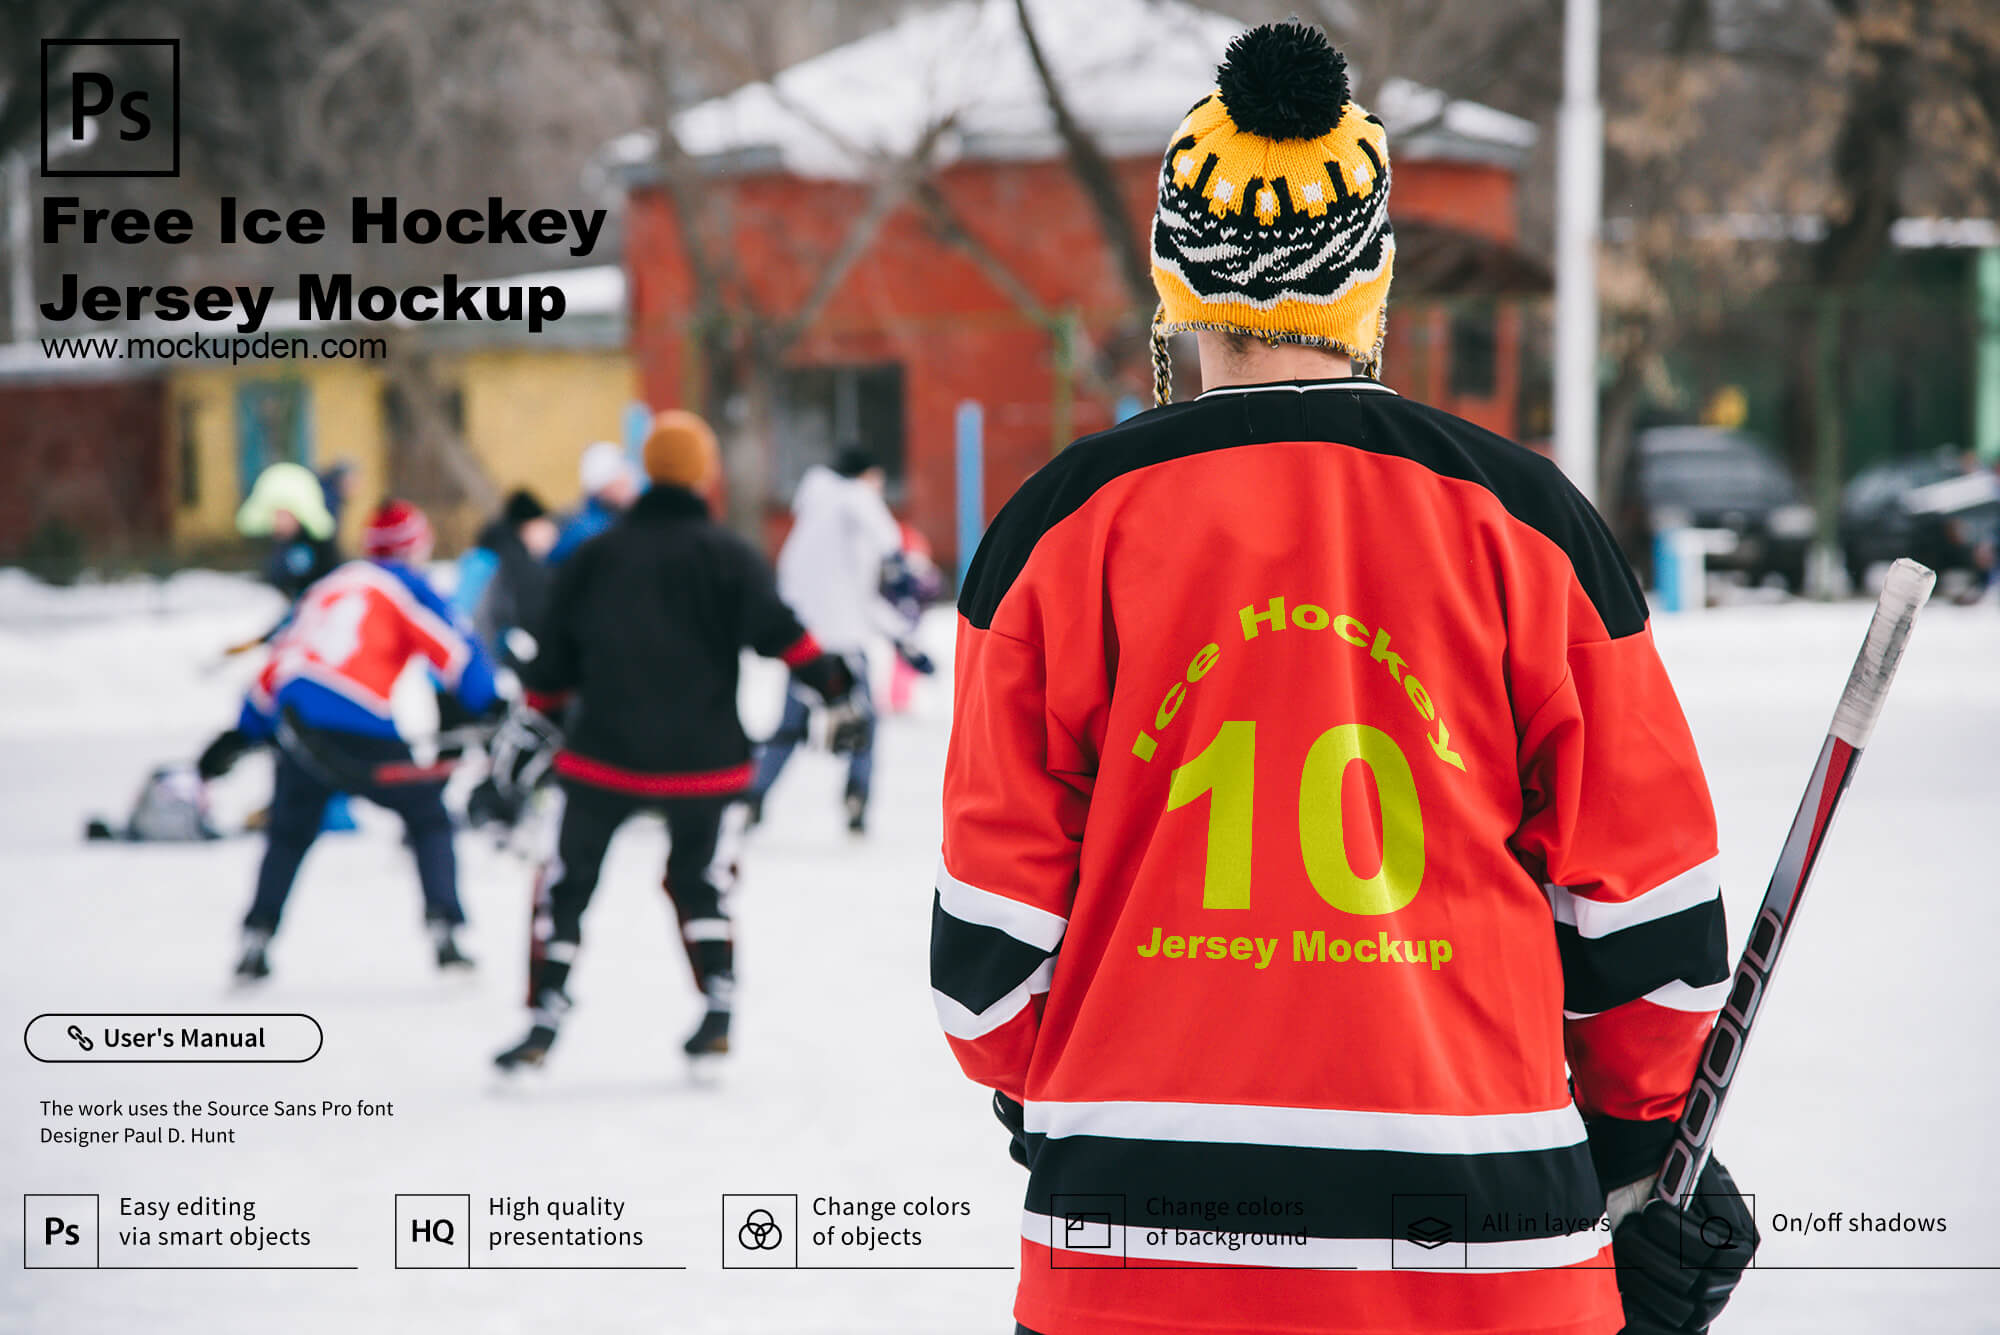 Free Ice Hockey Jersey Mockup PSD Template